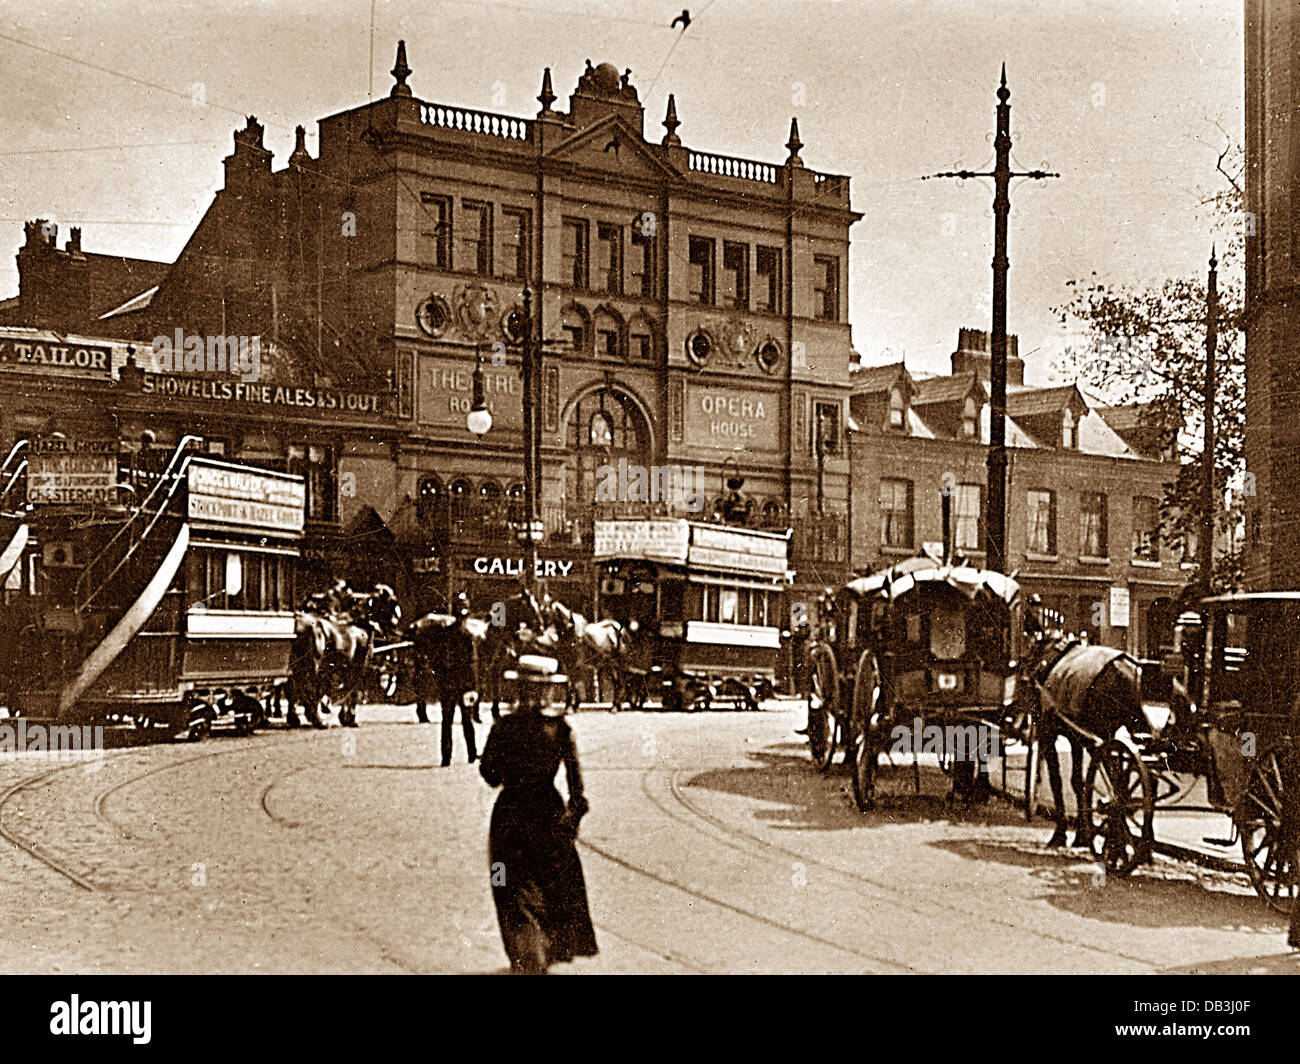 Stockport St. Peter's Square Victorian period - Stock Image